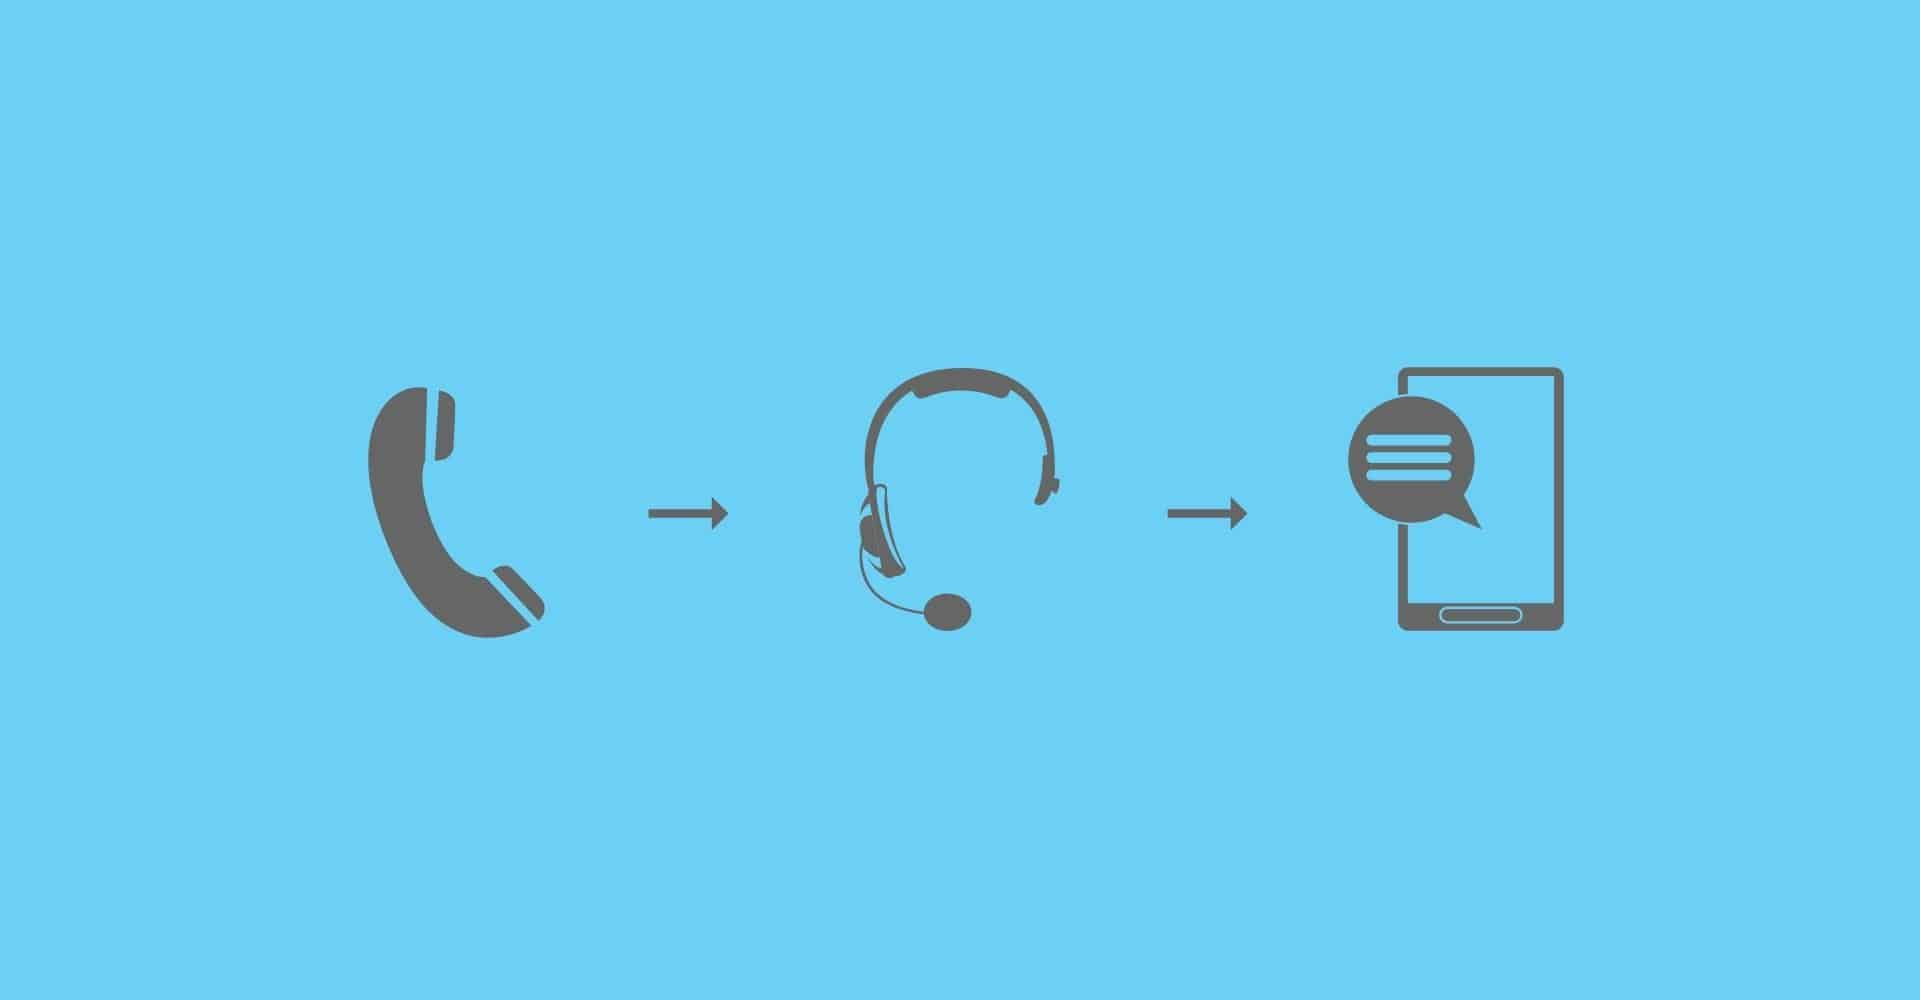 Icons: phone, headset, tablet